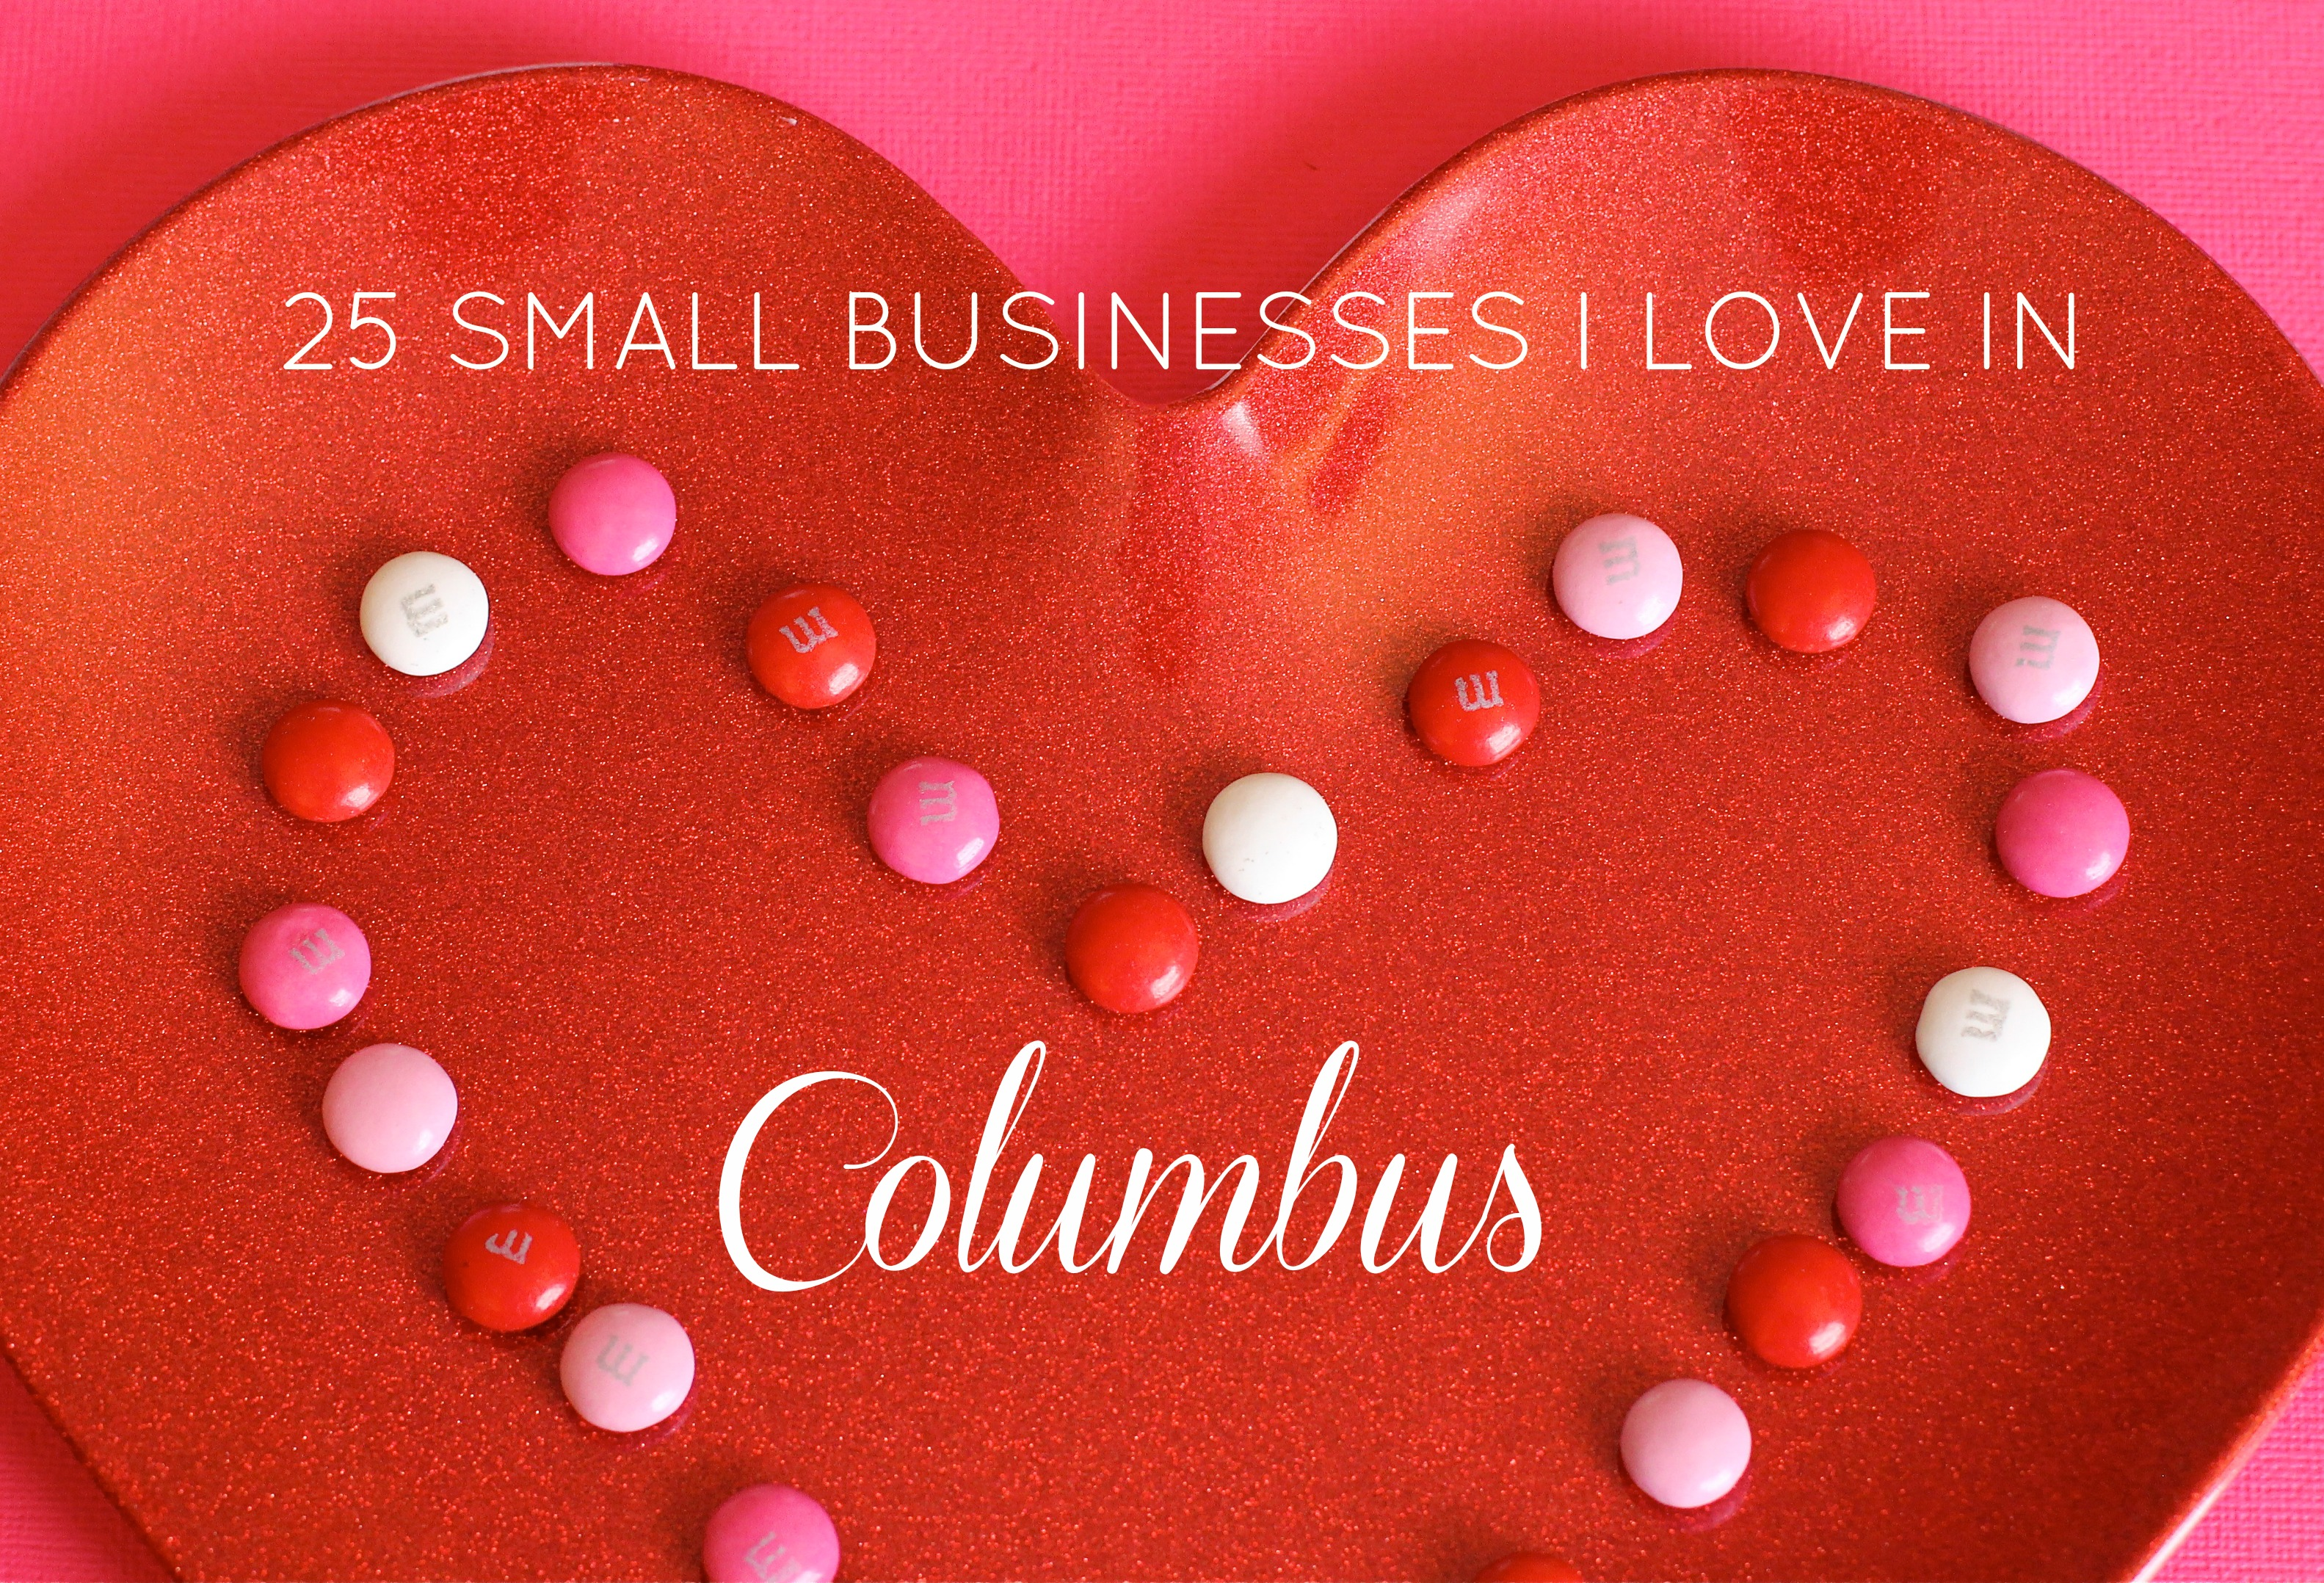 columbus_small_businesses_ohio_girl_about_columbus